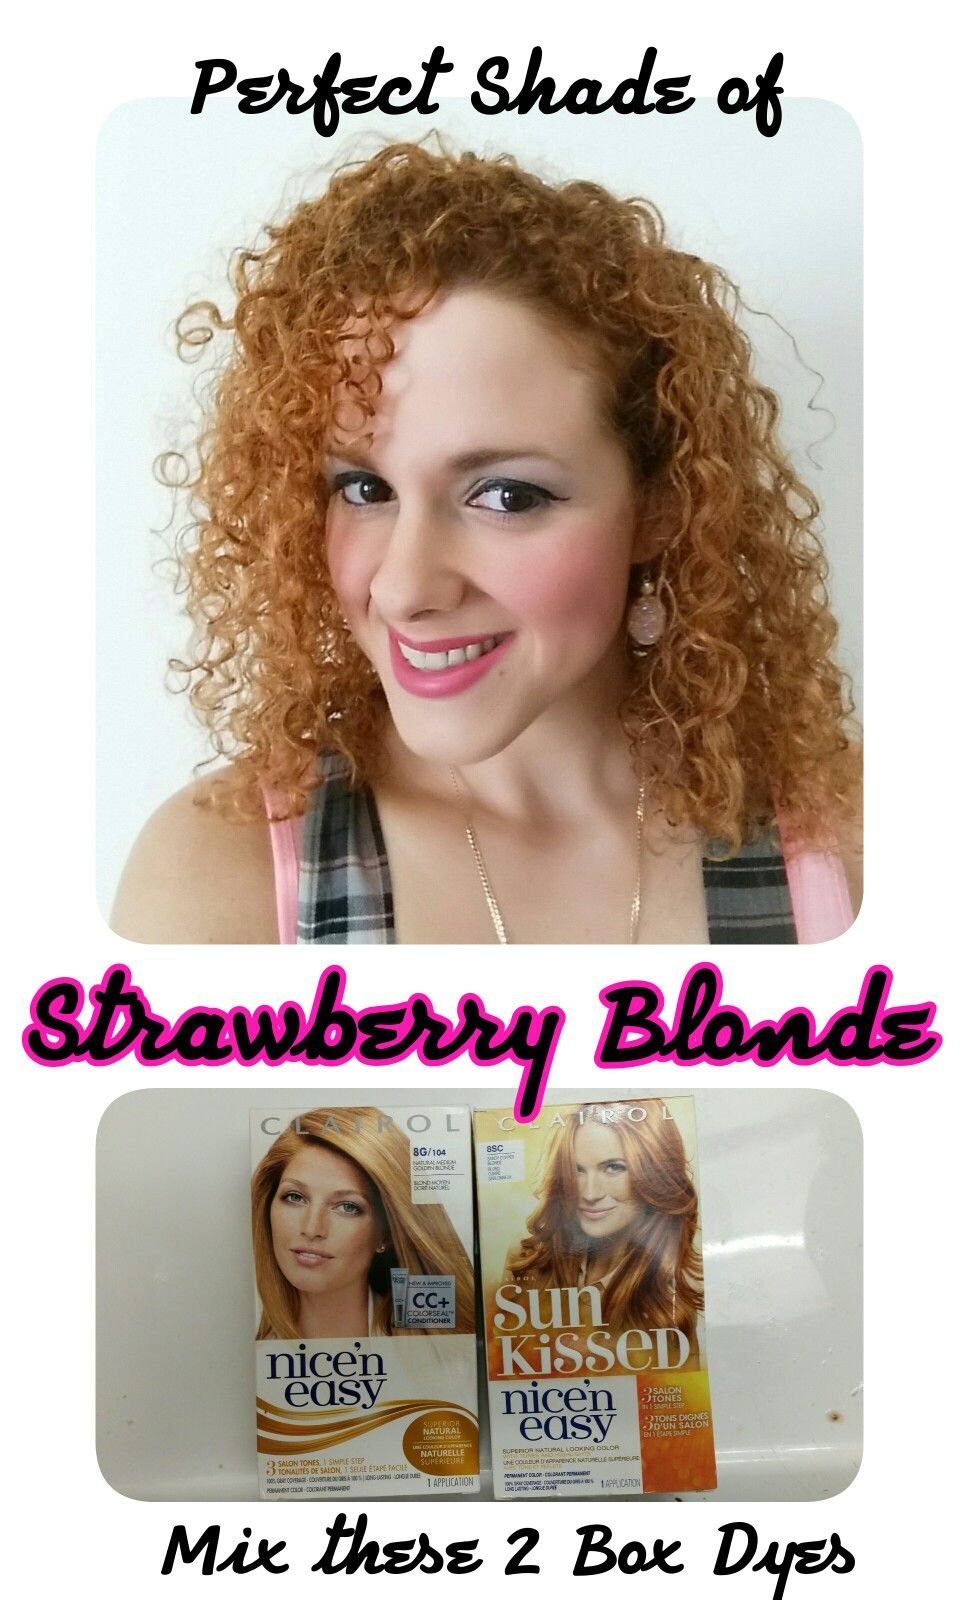 The Best Way To Achieve The Perfect Shade Of Strawberry Blonde